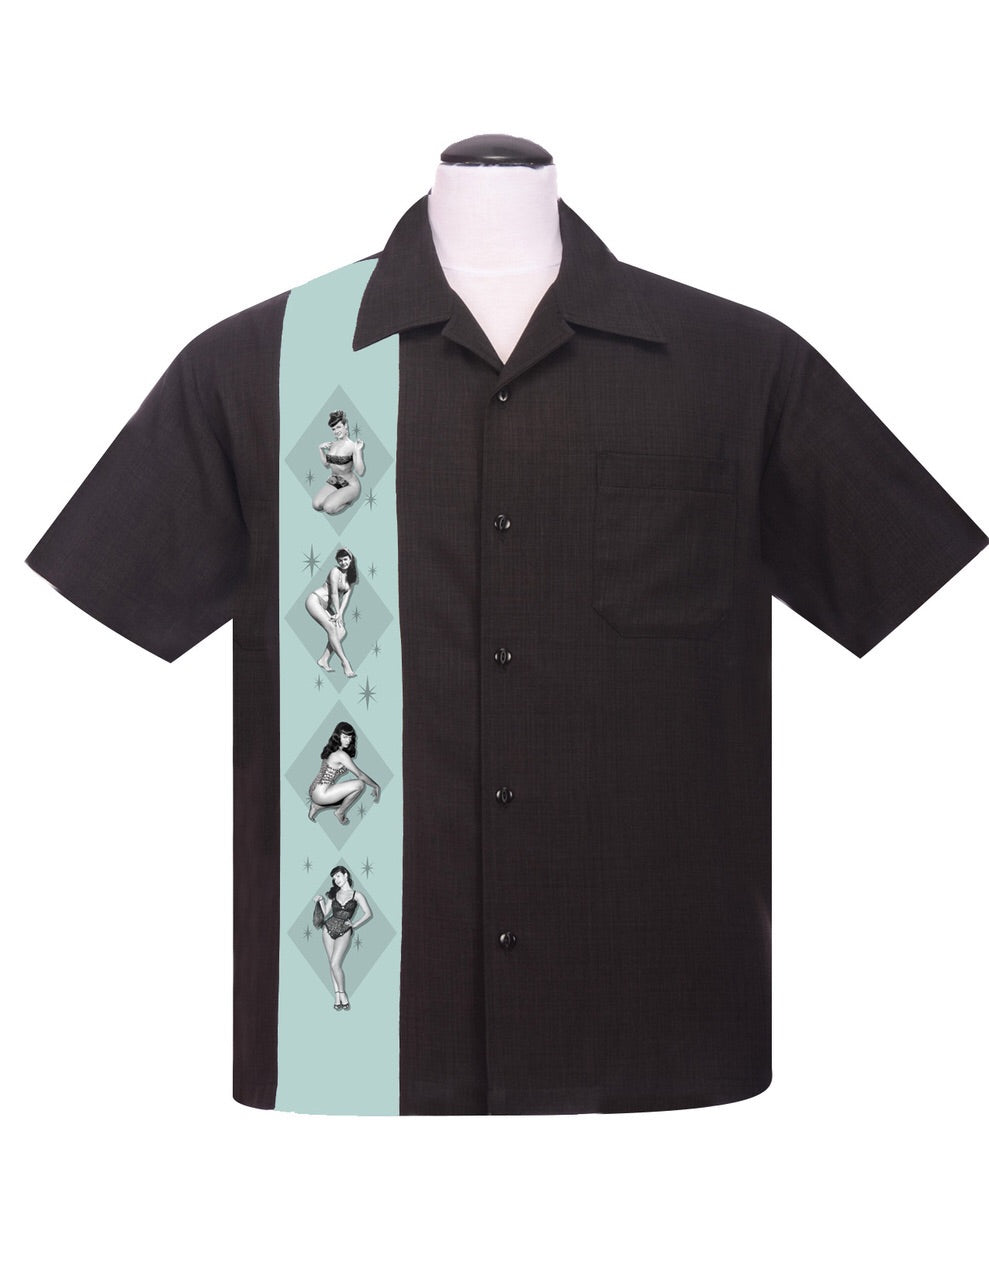 Steady Clothing Bettie Page Pinup Panel Button Up